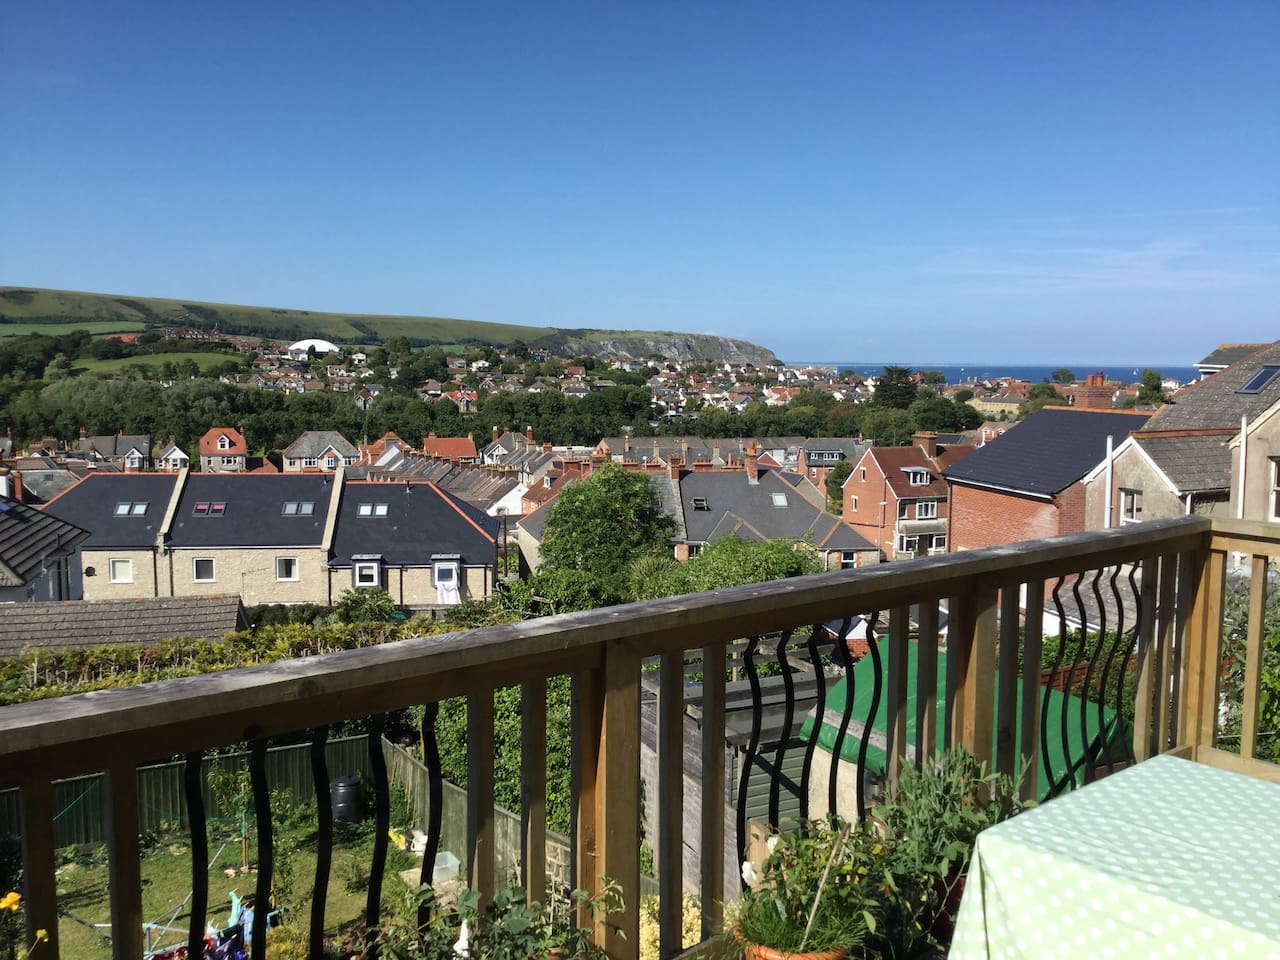 View from the balcony over the town and Swanage bay